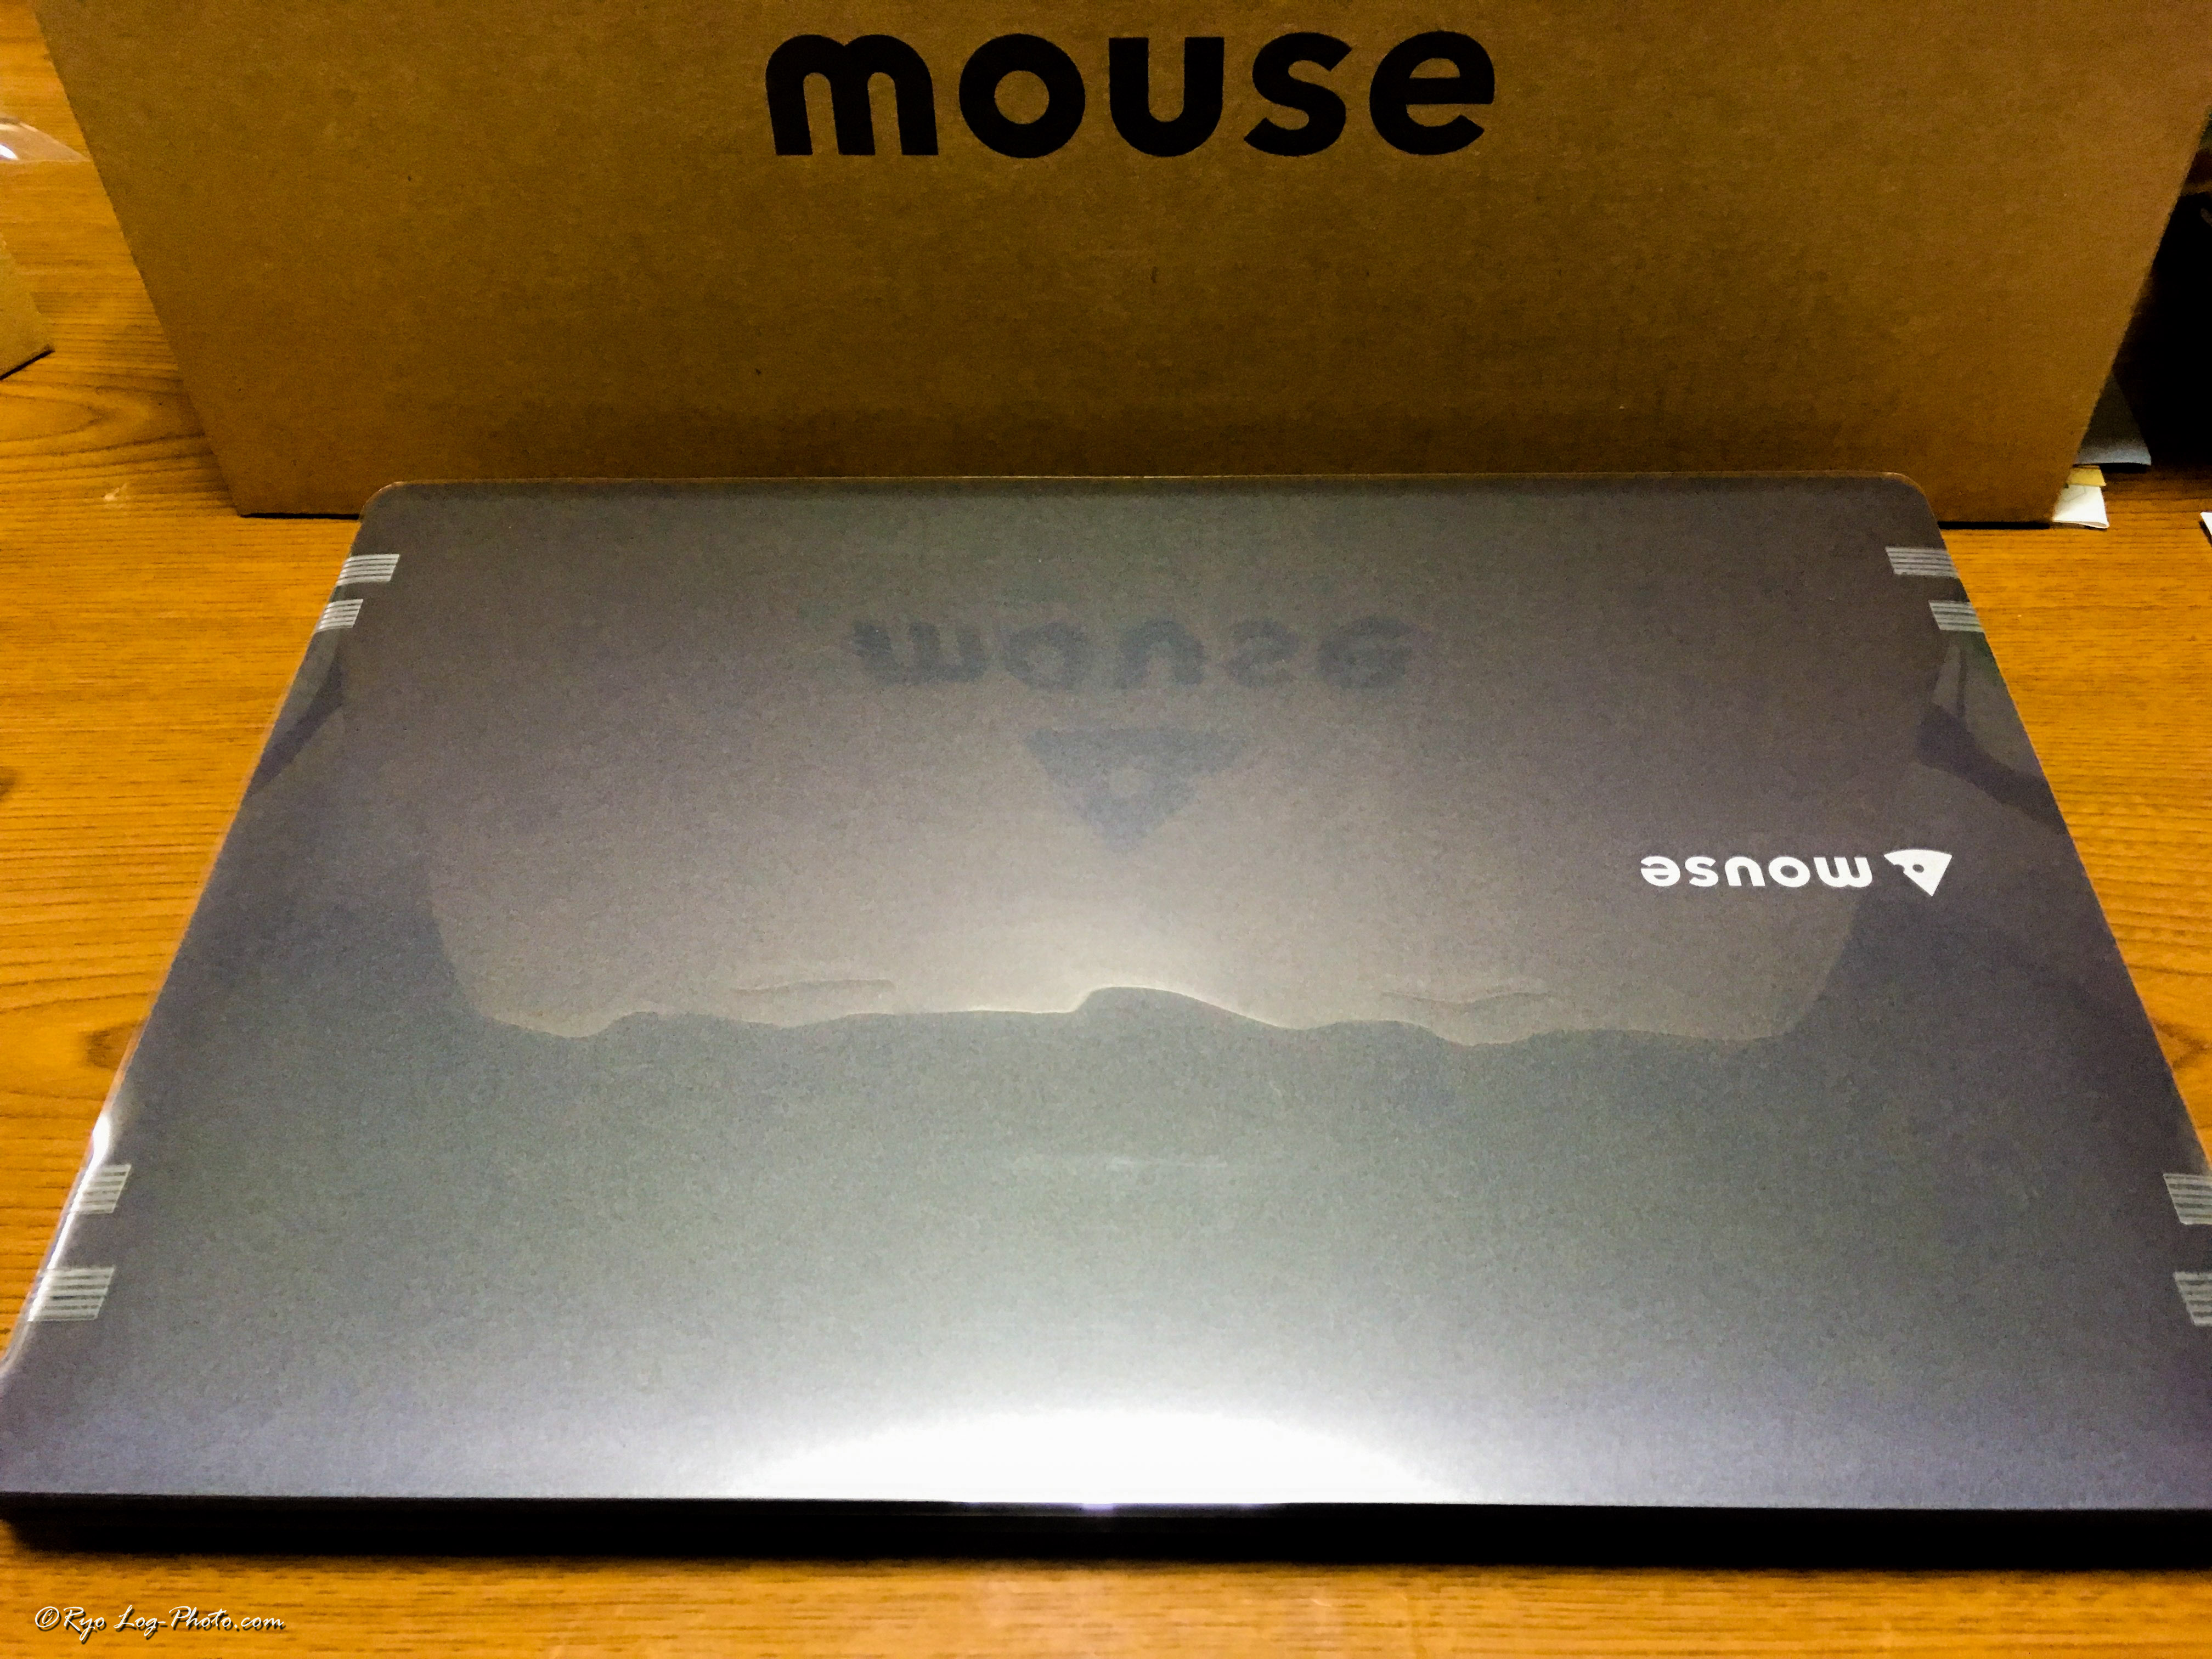 mouse マウスコンピューター ノートパソコン